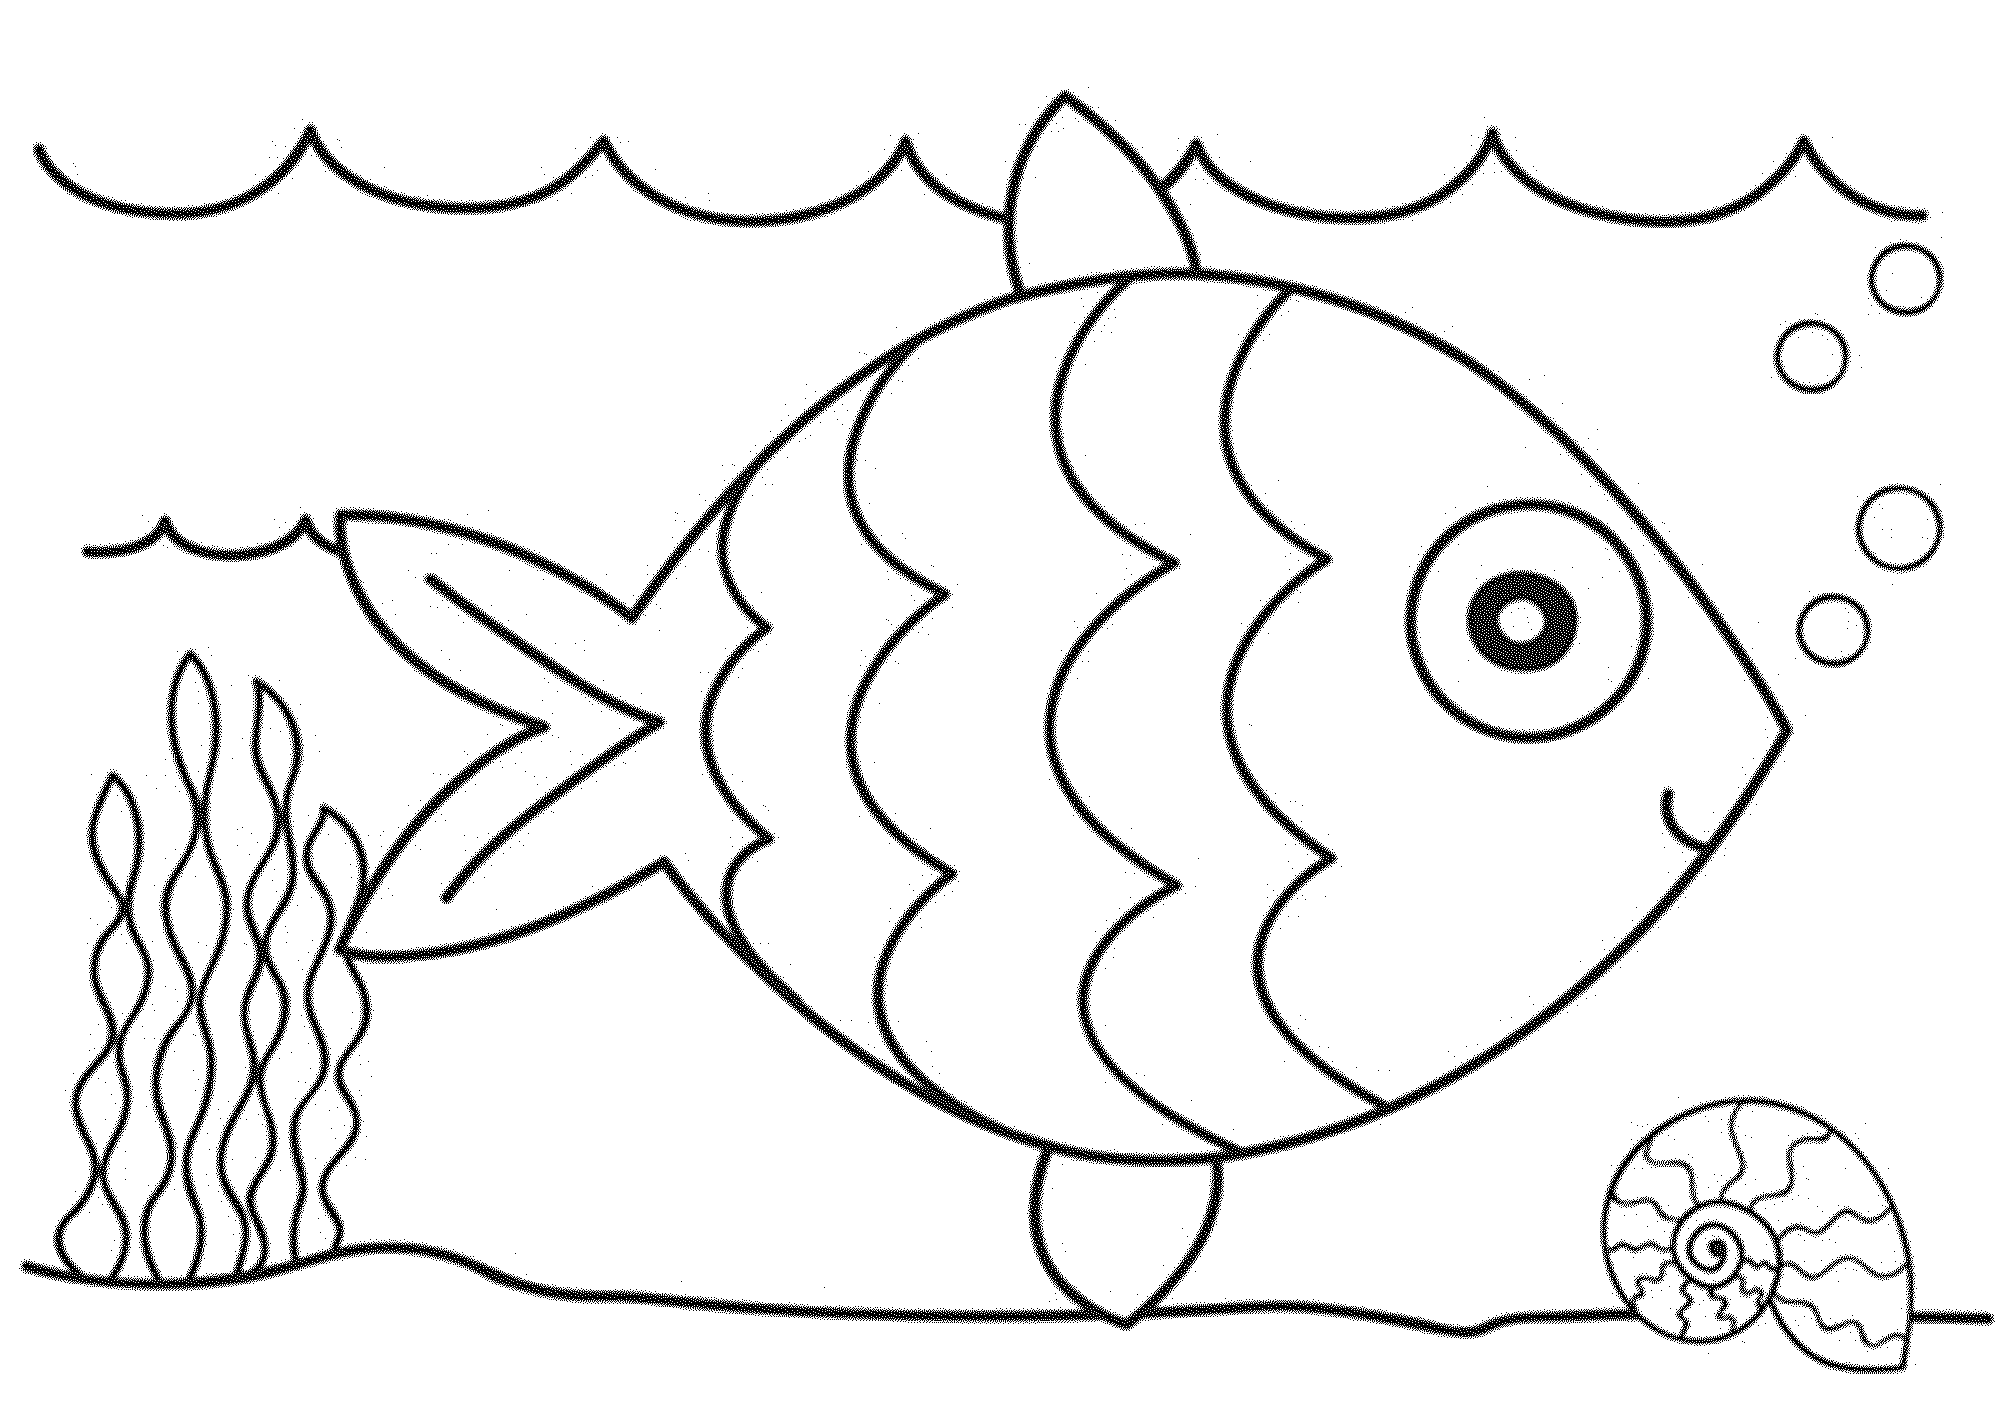 2000x1420 Cartoon Black And White Fish